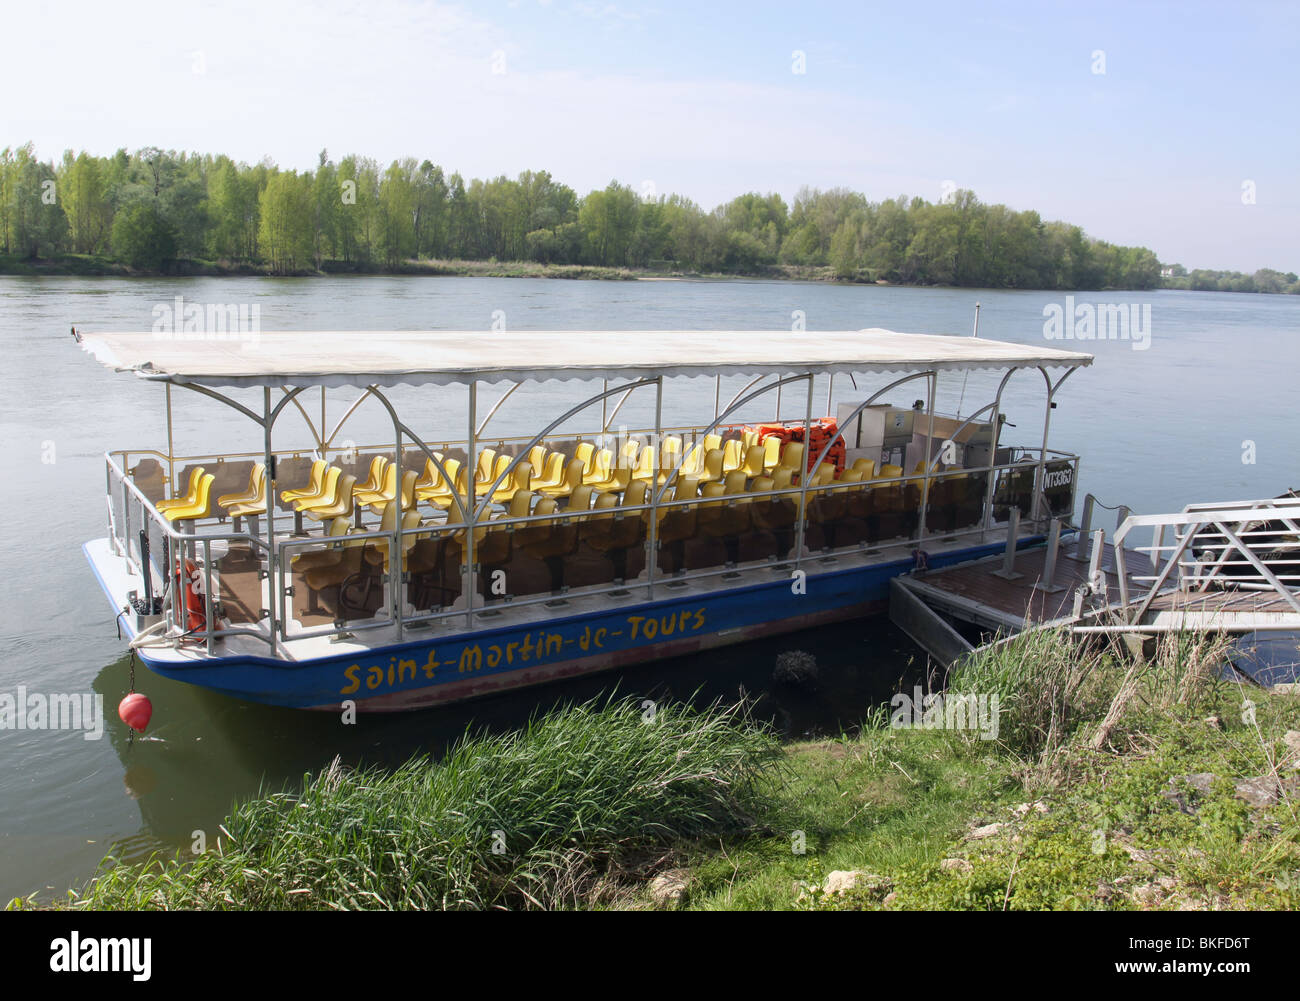 Le Saint-Martin-de-Tours boat moored on the bank of the River Loire Rochecorbon France  April 2010 - Stock Image